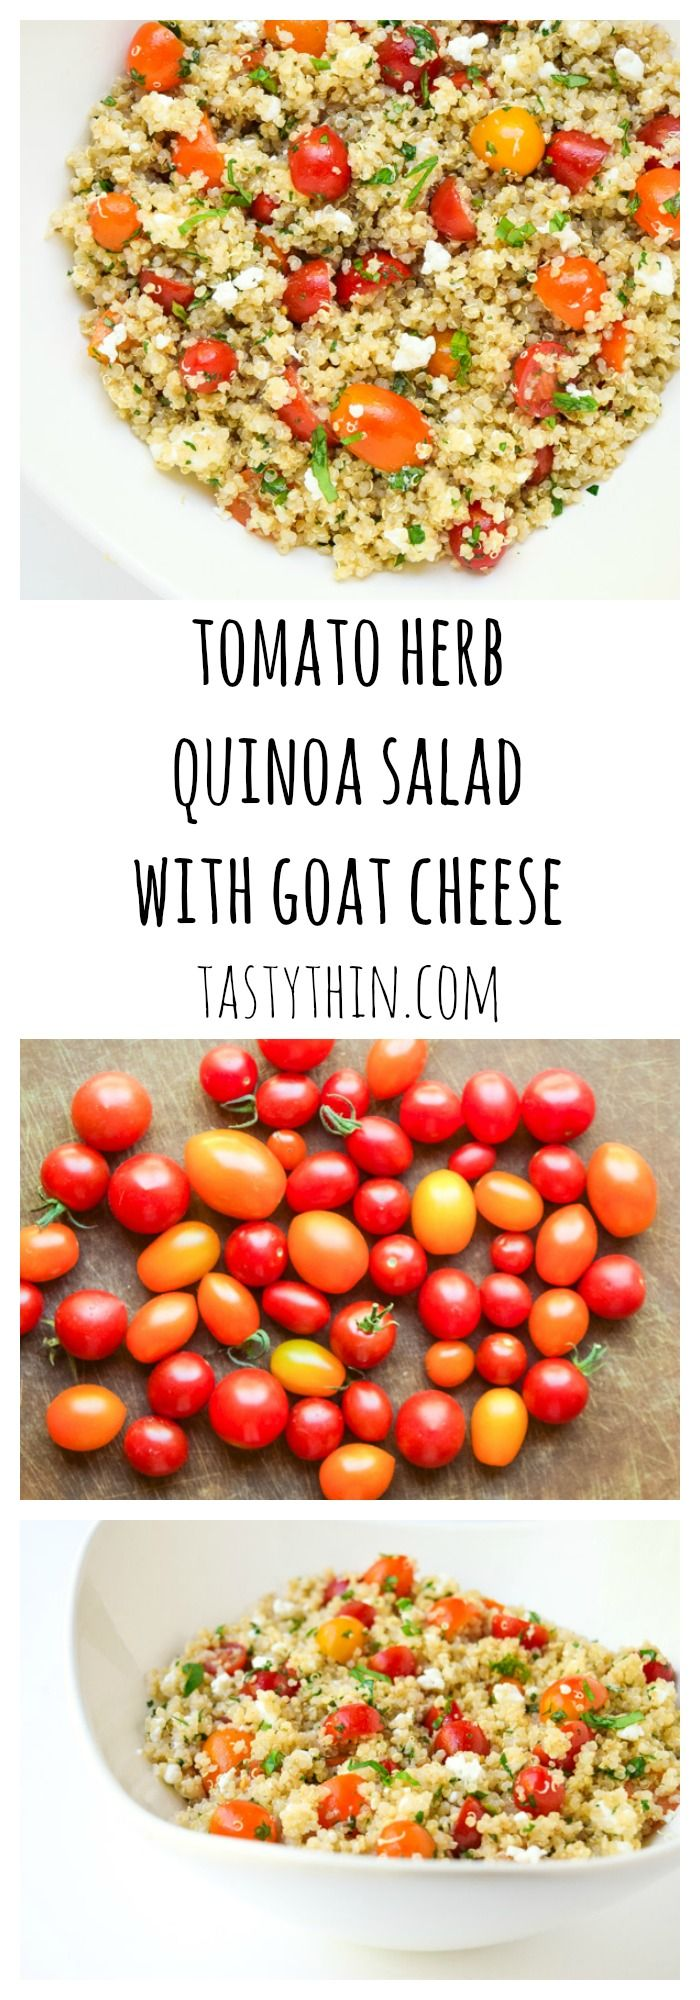 Tomato Herb Quinoa Salad - A trio of sweet cherry tomatoes, fresh herbs, and creamy goat cheese brighten this tasty salad!   tastythin.com